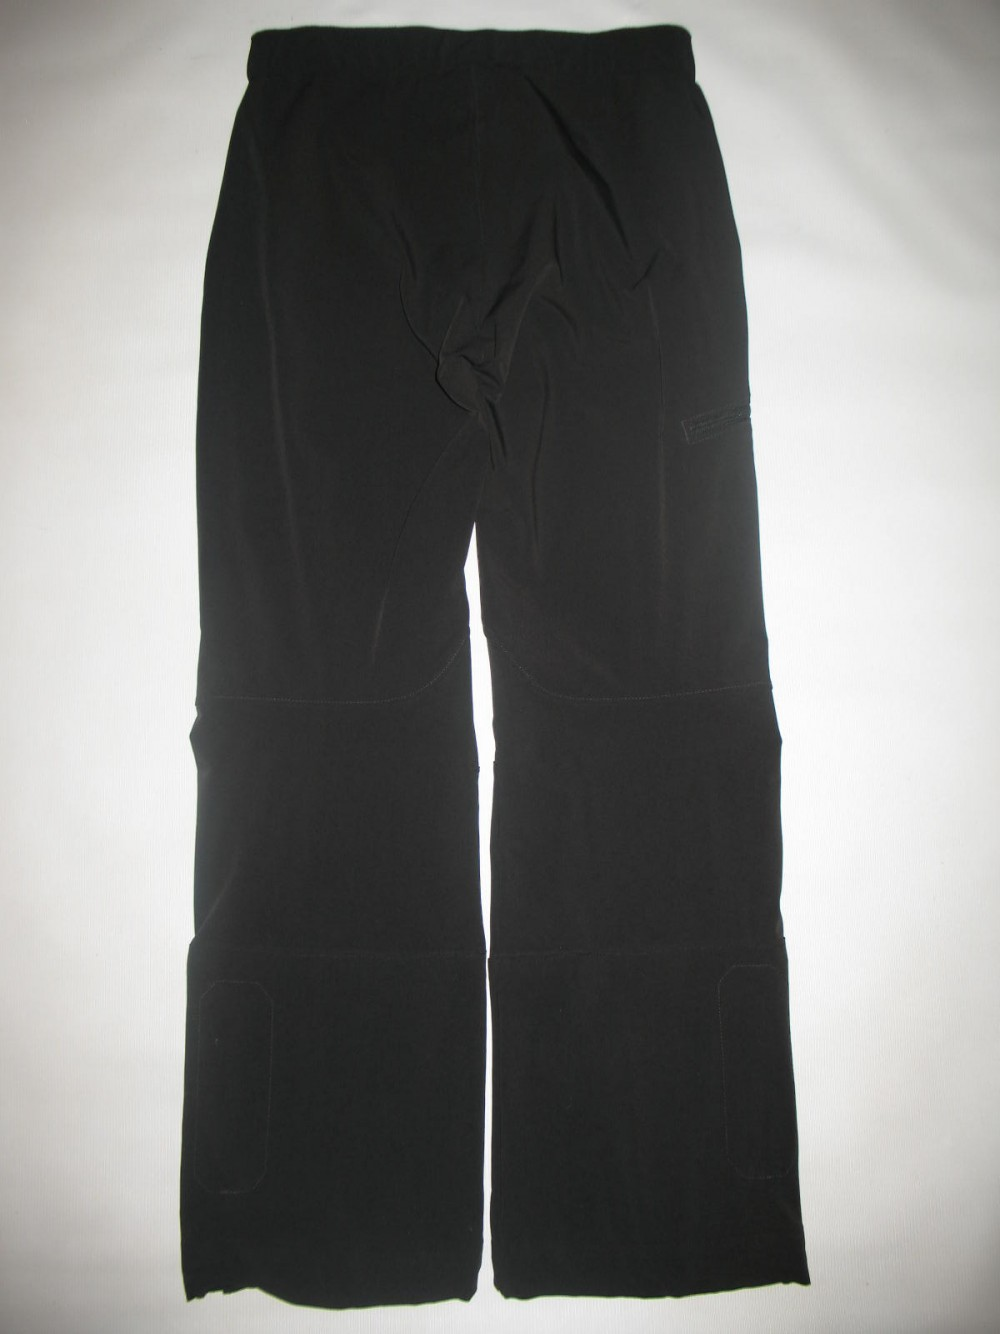 Штаны THE NORTH FACE apex softshell pants lady (размер 8/S) - 2